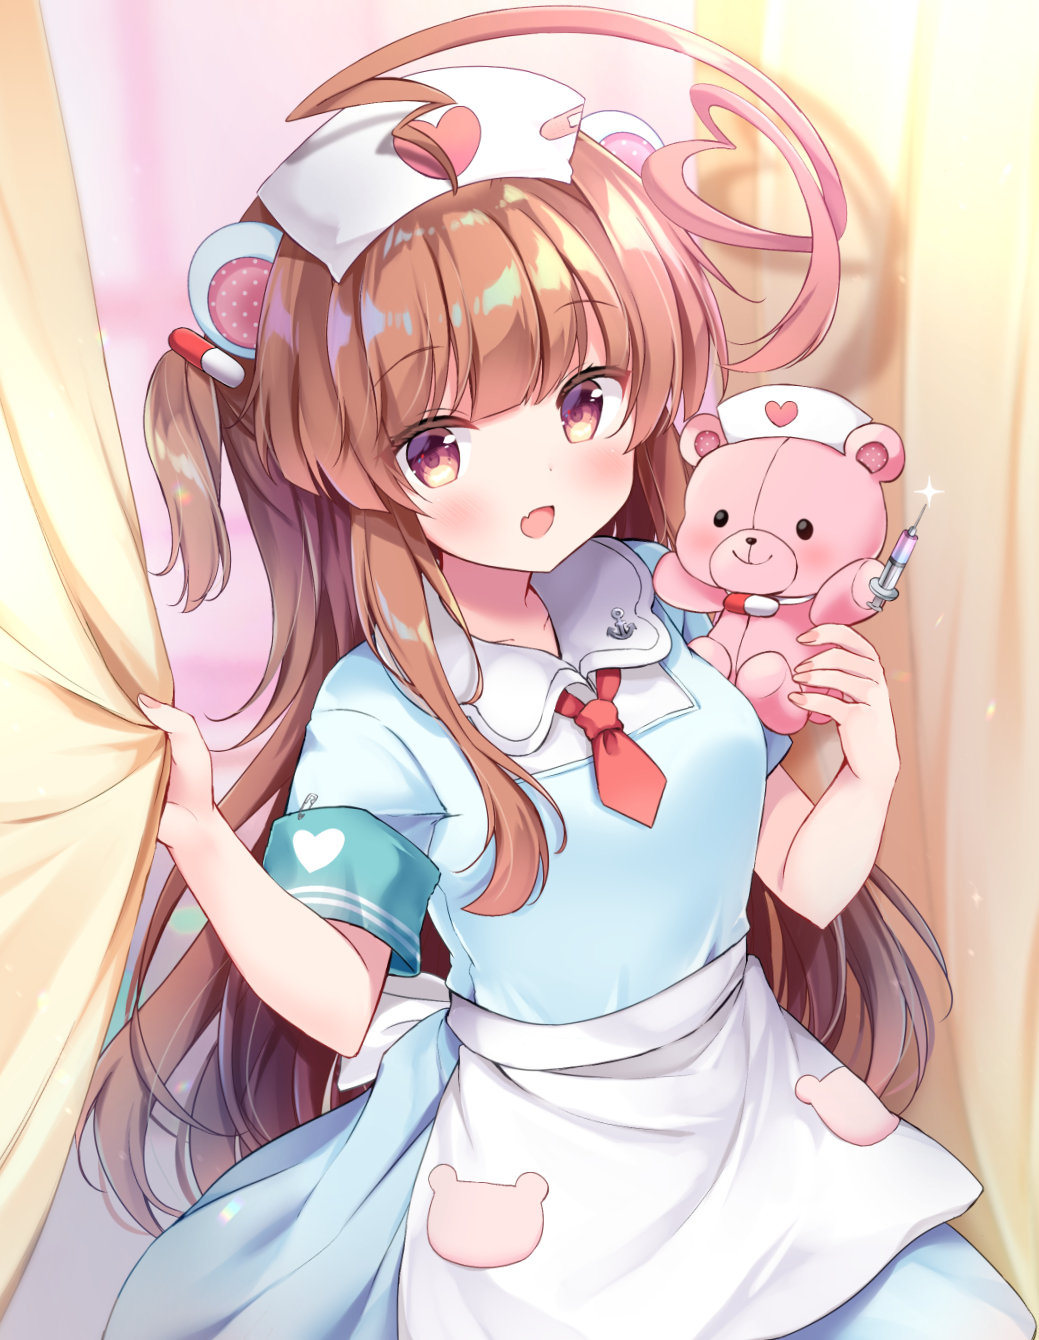 1girl :d ahoge alternate_costume animal_ears bear_ears brown_eyes brown_hair commentary_request fang hat heart highres huge_ahoge kantai_collection kuma_(kantai_collection) long_hair masayo_(gin_no_ame) necktie nurse nurse_cap open_mouth red_neckwear short_sleeves smile solo stuffed_animal stuffed_toy syringe teddy_bear